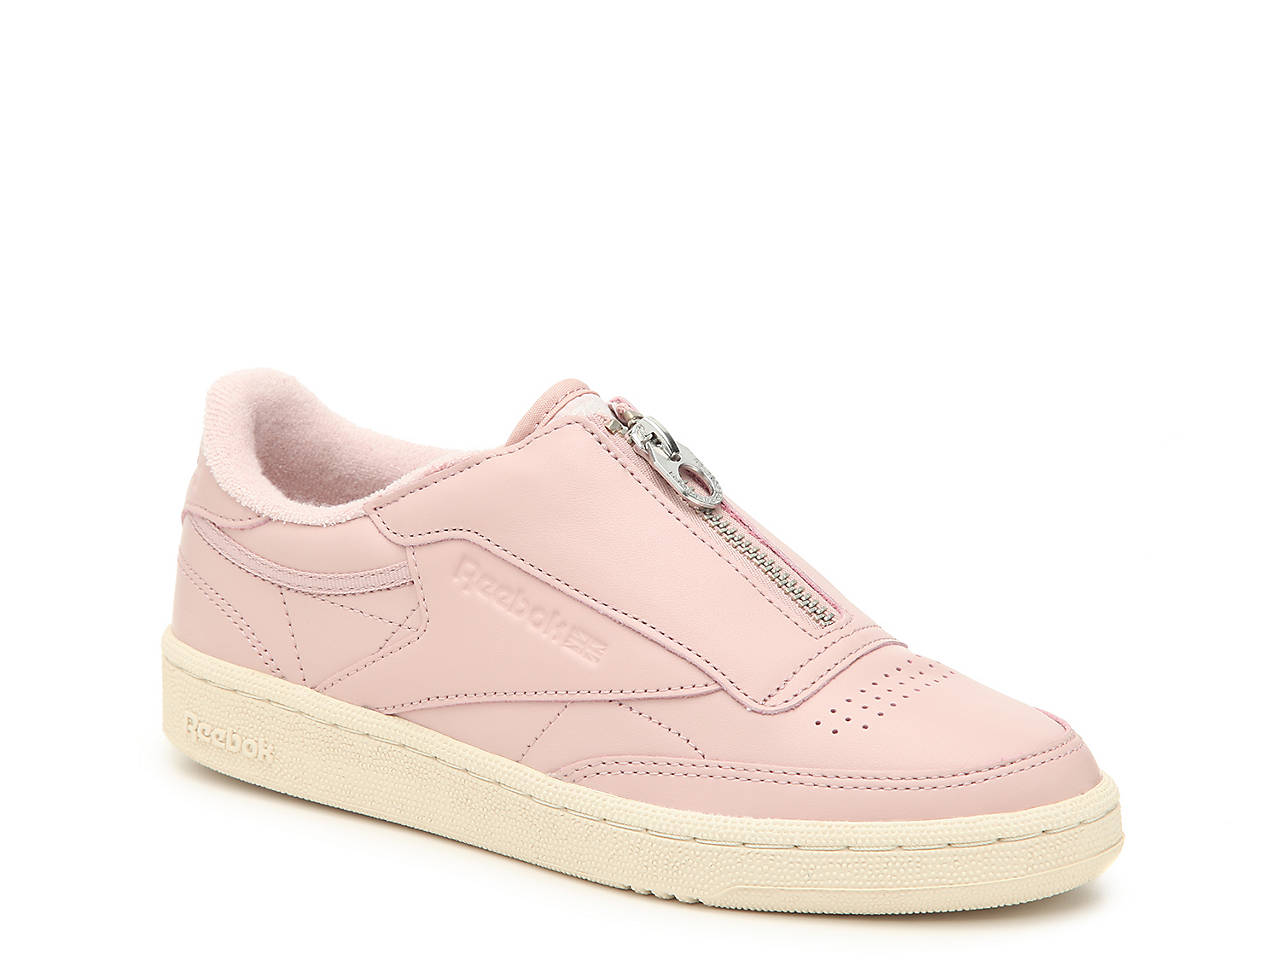 8bca7c9547e826 Reebok Club C 85 Zip Sneaker - Women s Women s Shoes